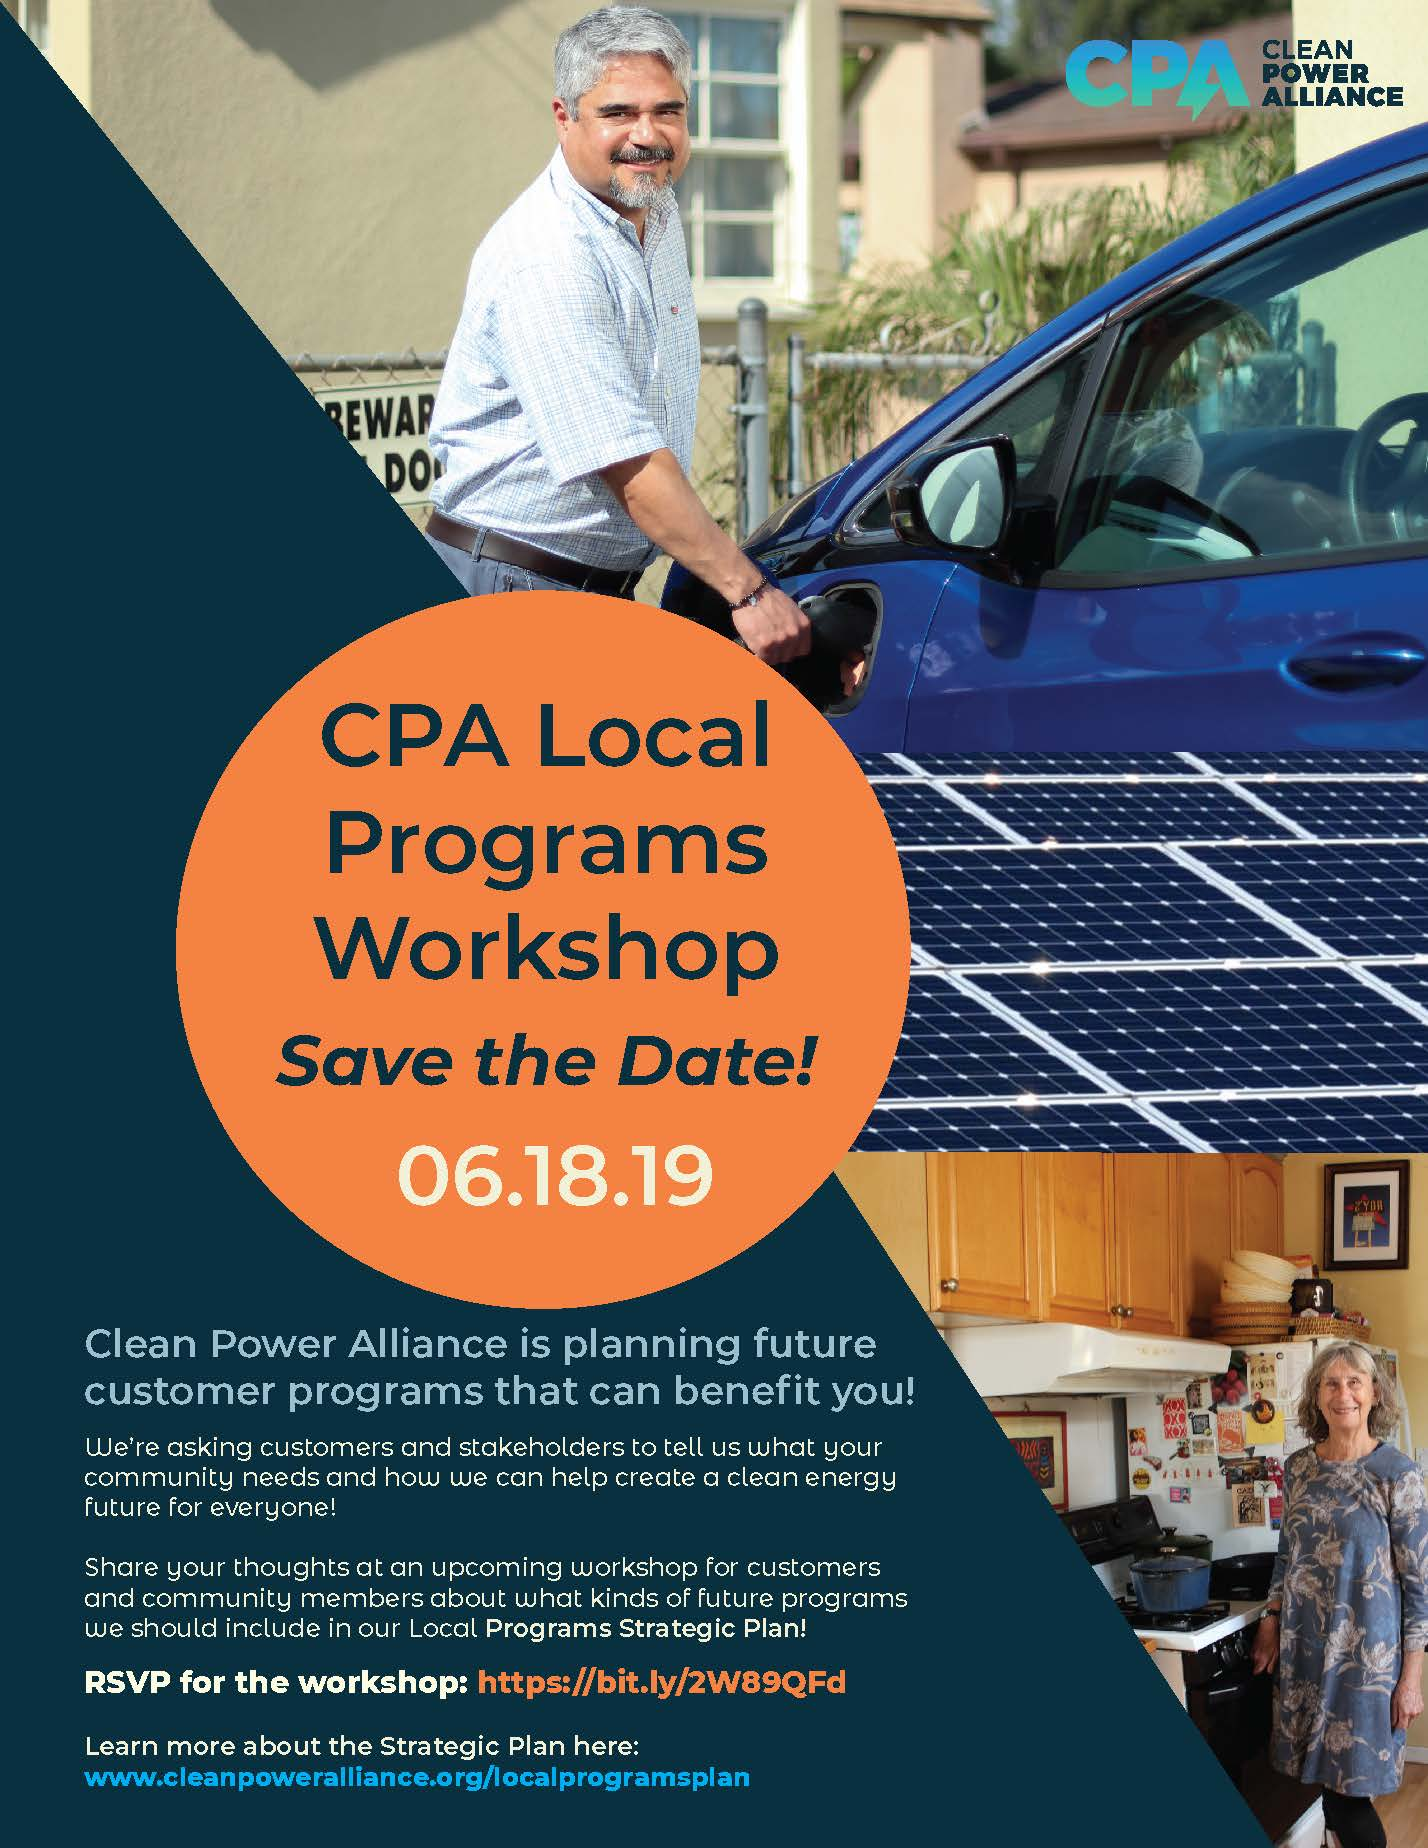 CPA Local Program Workshop flyer